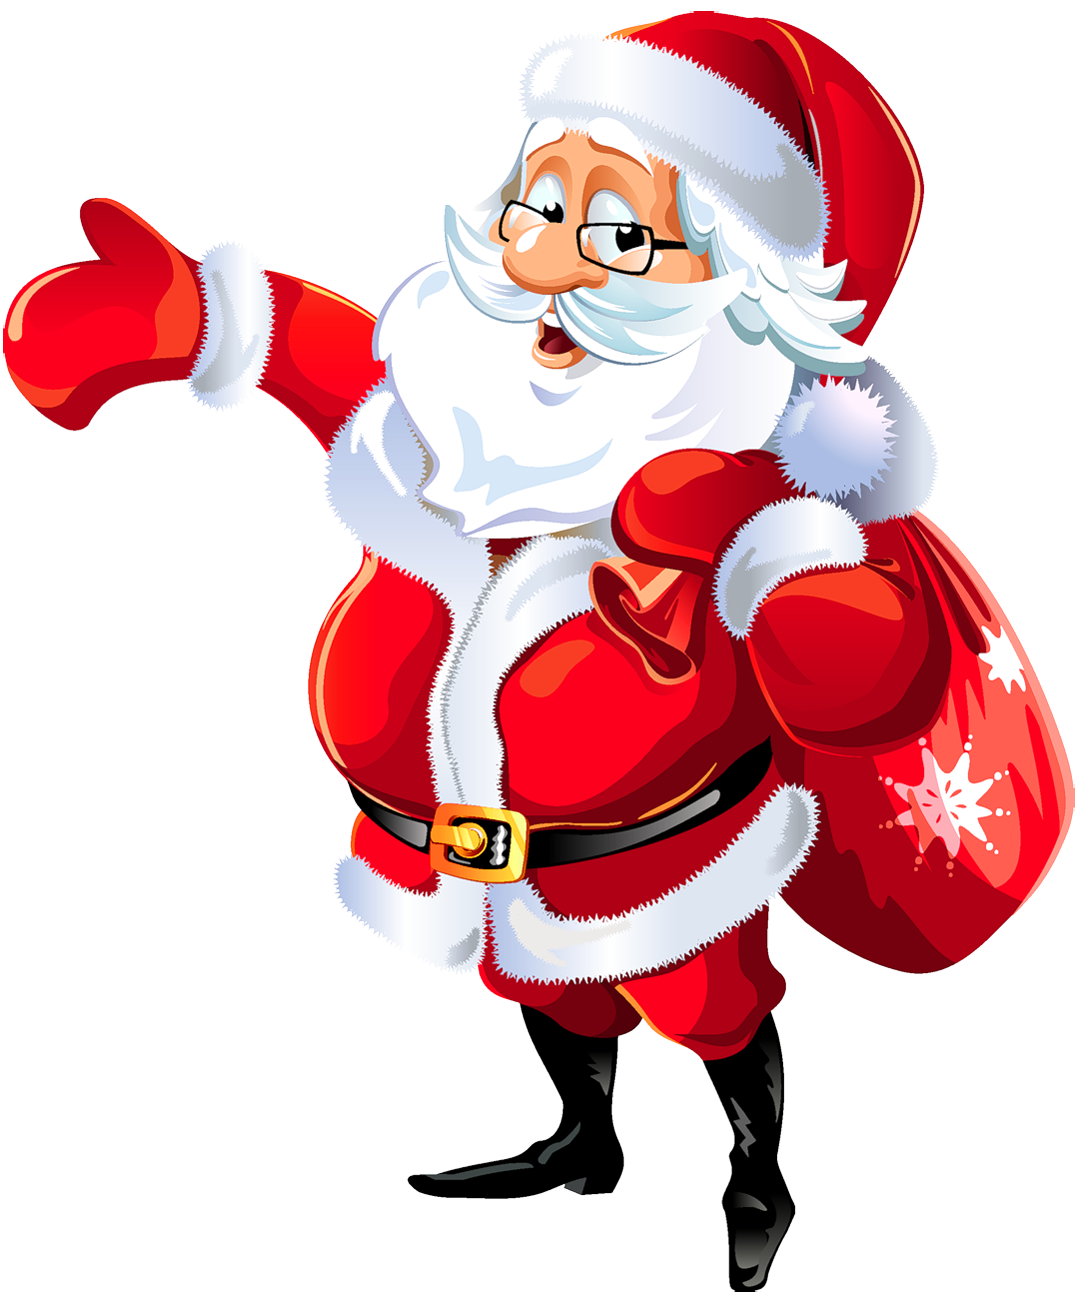 Download Free High quality Santa Claus Png Transparent Images